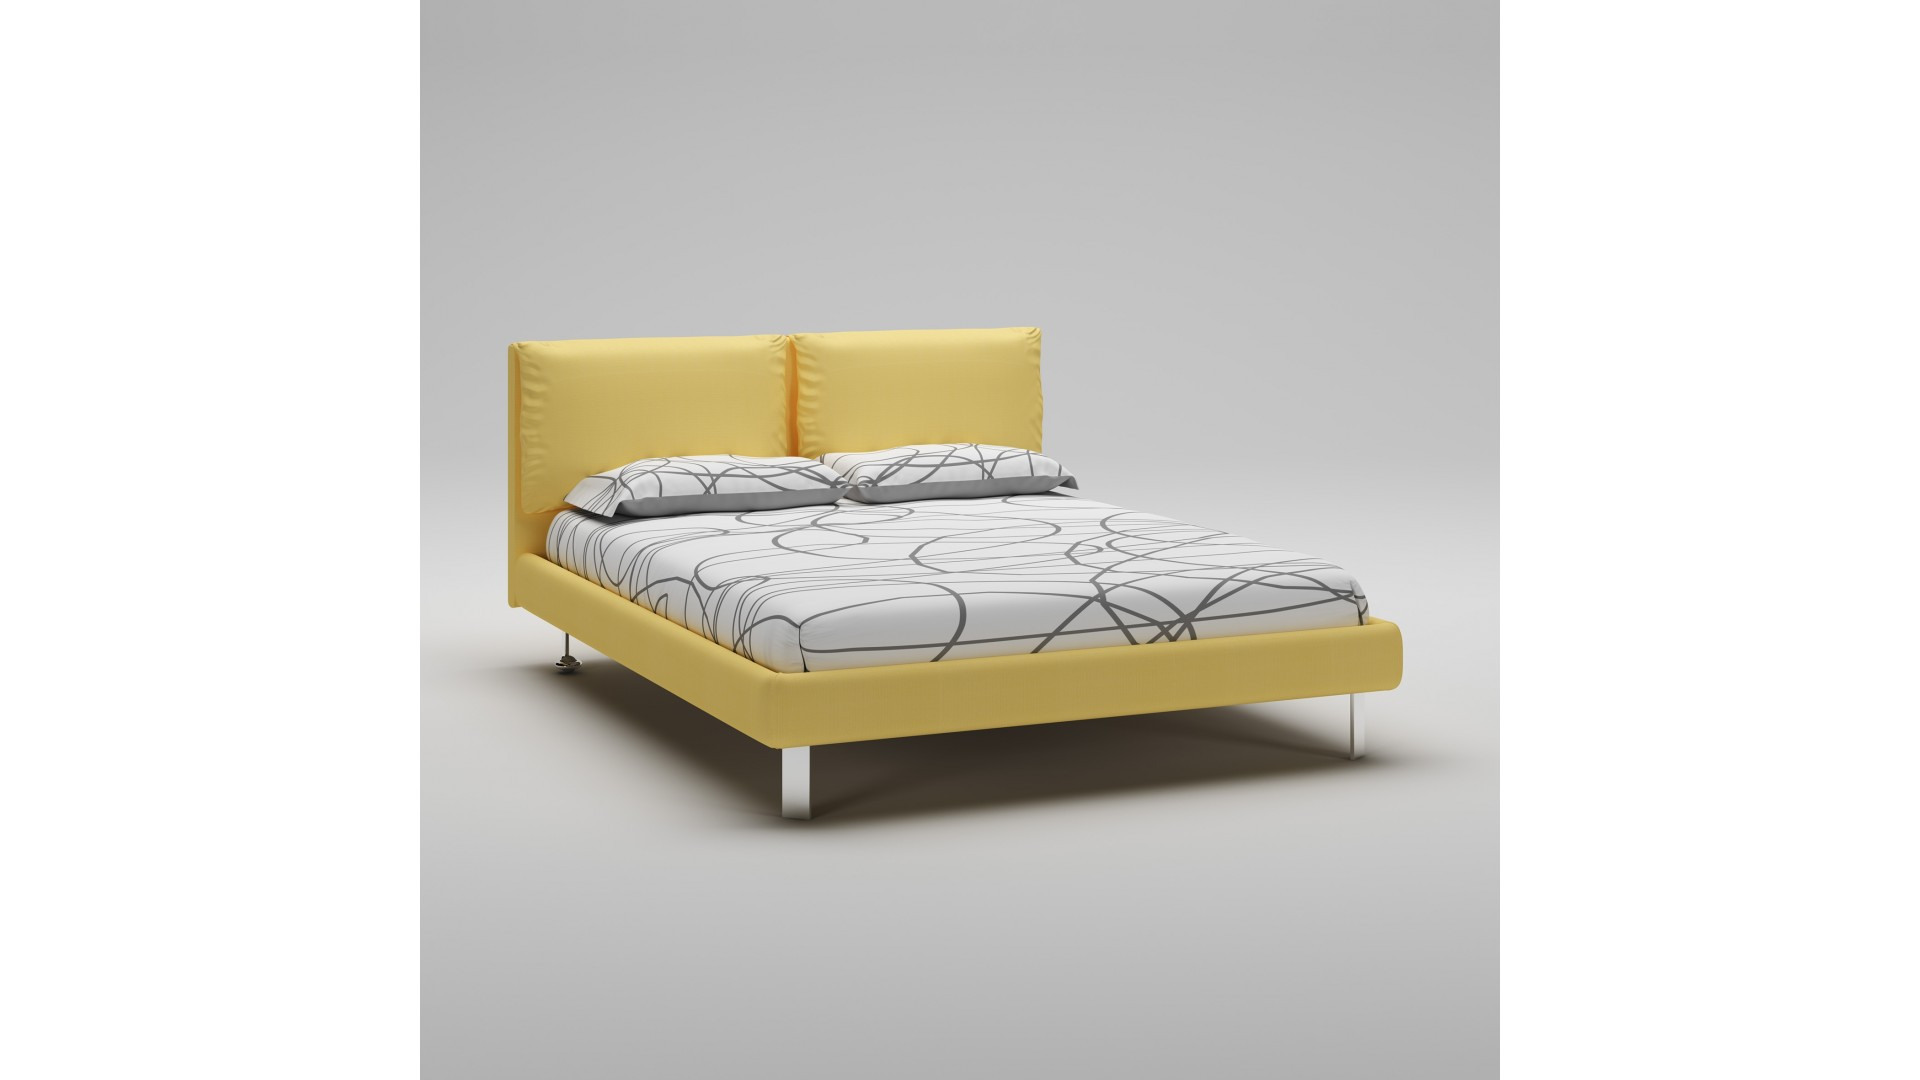 lit 160x200 avec cadre t te de lit jaune moretti. Black Bedroom Furniture Sets. Home Design Ideas